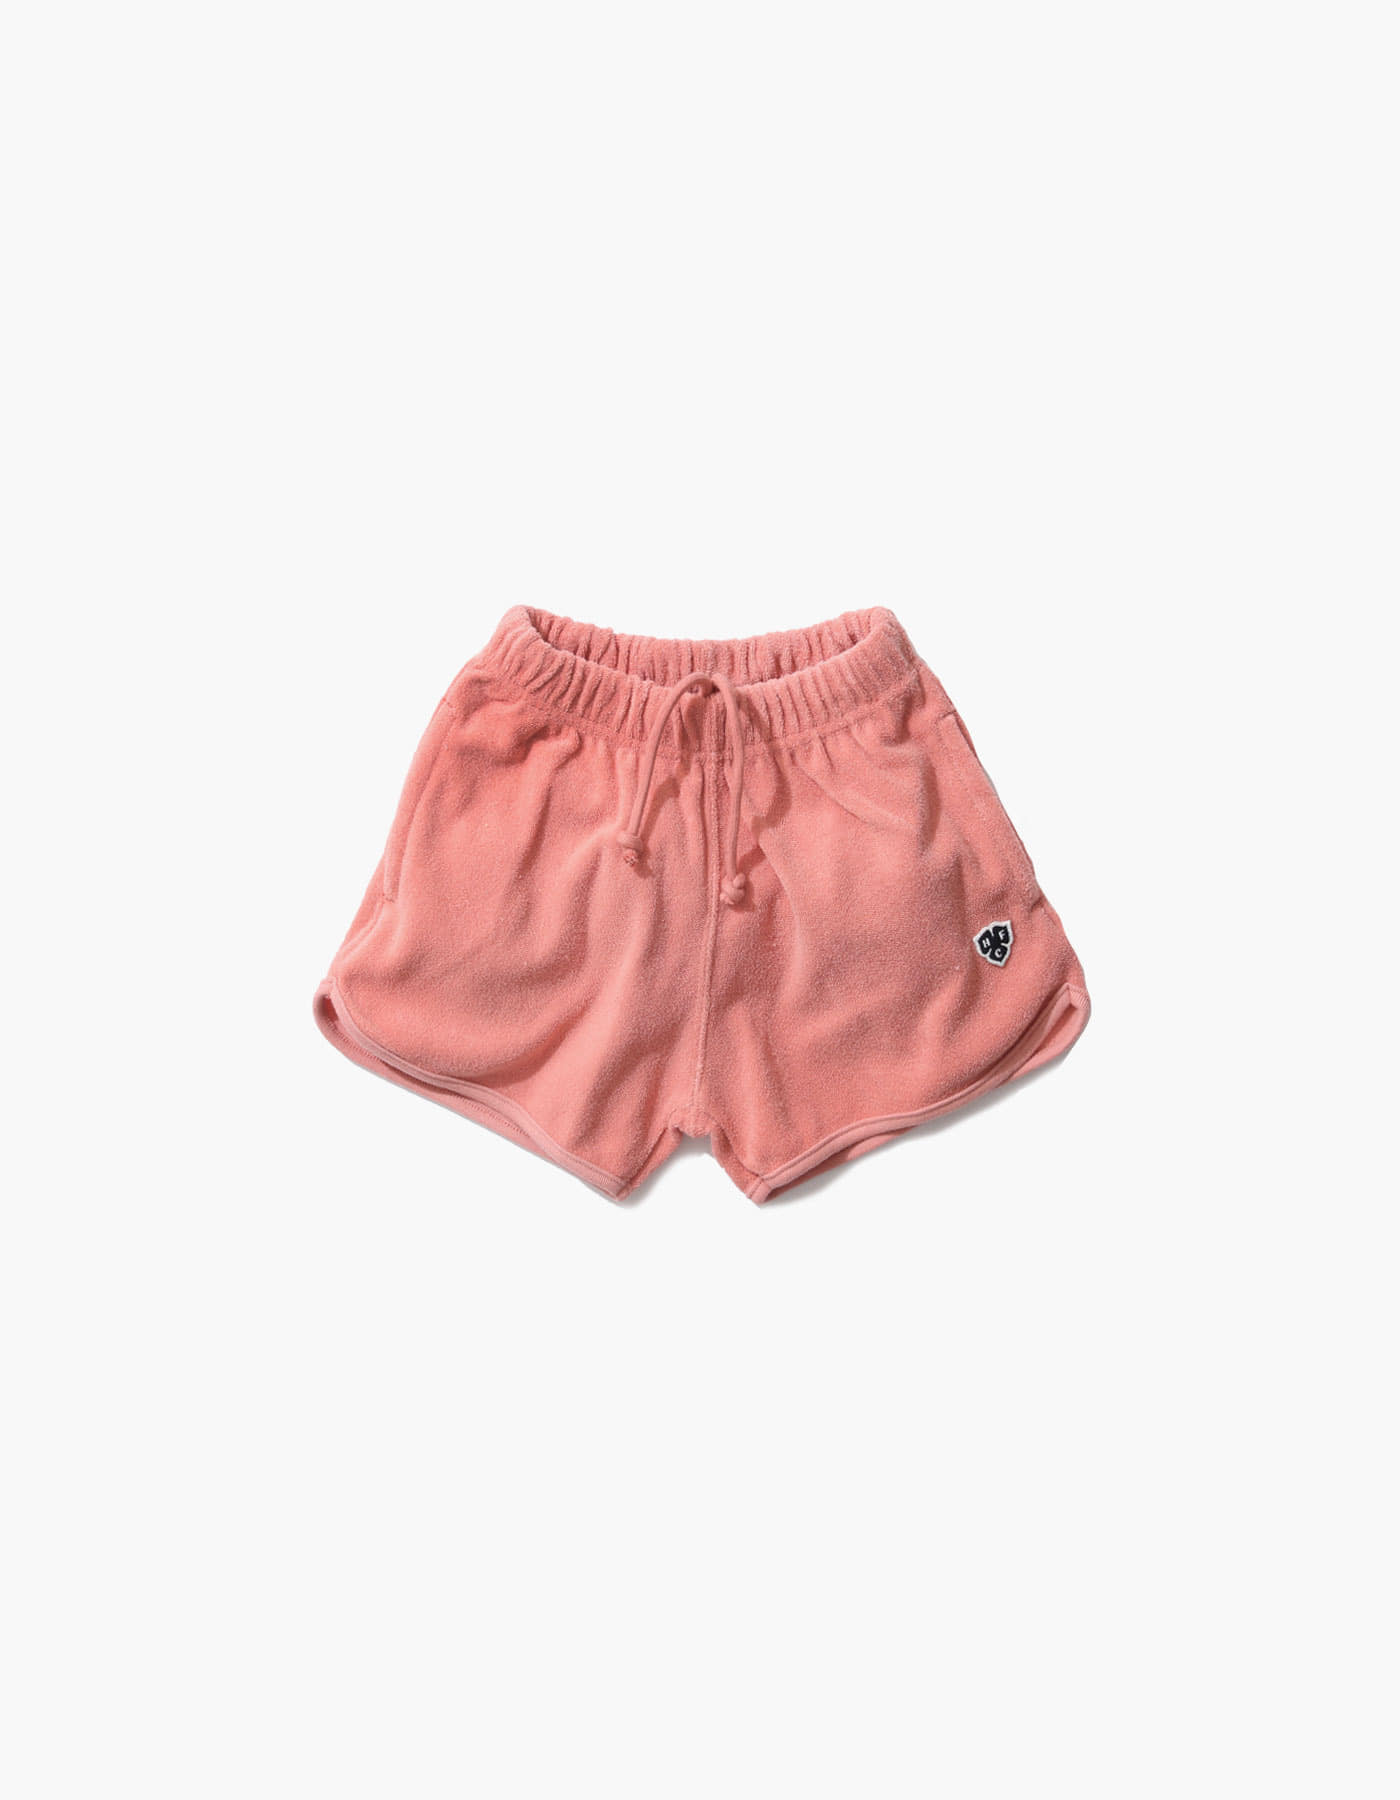 HFC CREST KIDS TOWEL SHORTS / MAROON